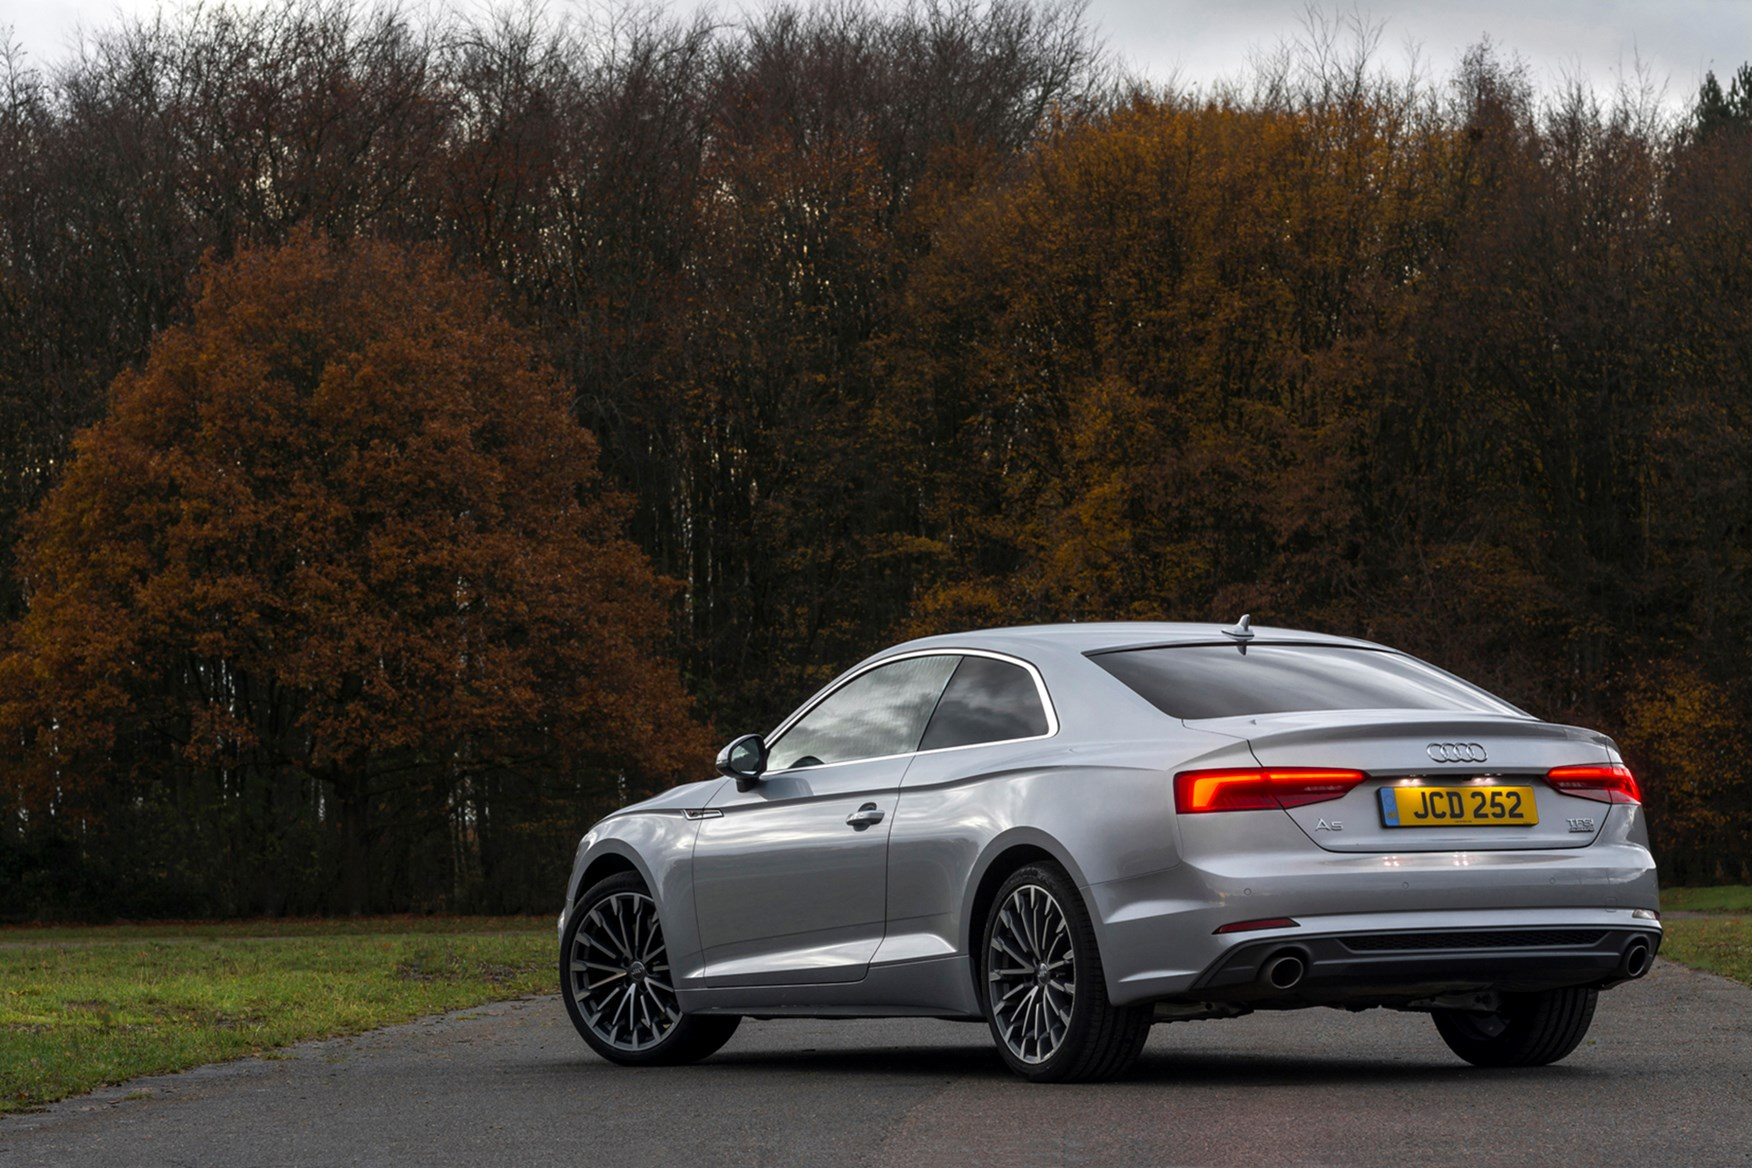 audi 39 s a5 gains 1 4 litre tfsi engine parkers. Black Bedroom Furniture Sets. Home Design Ideas